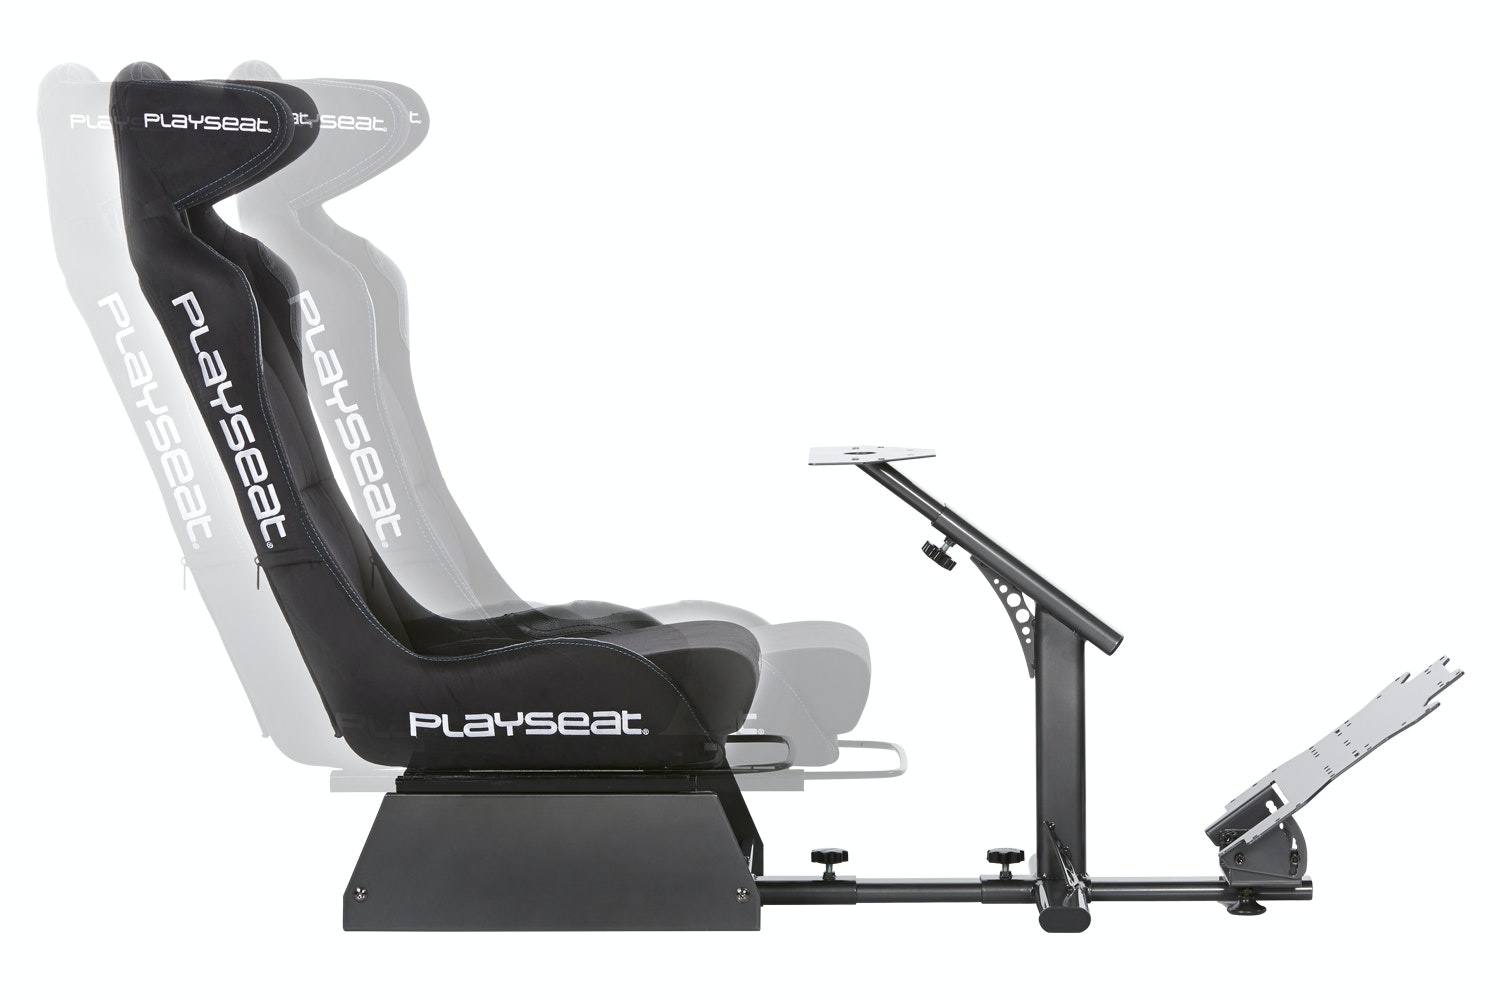 Playseat Seat Slider Gaming Chair